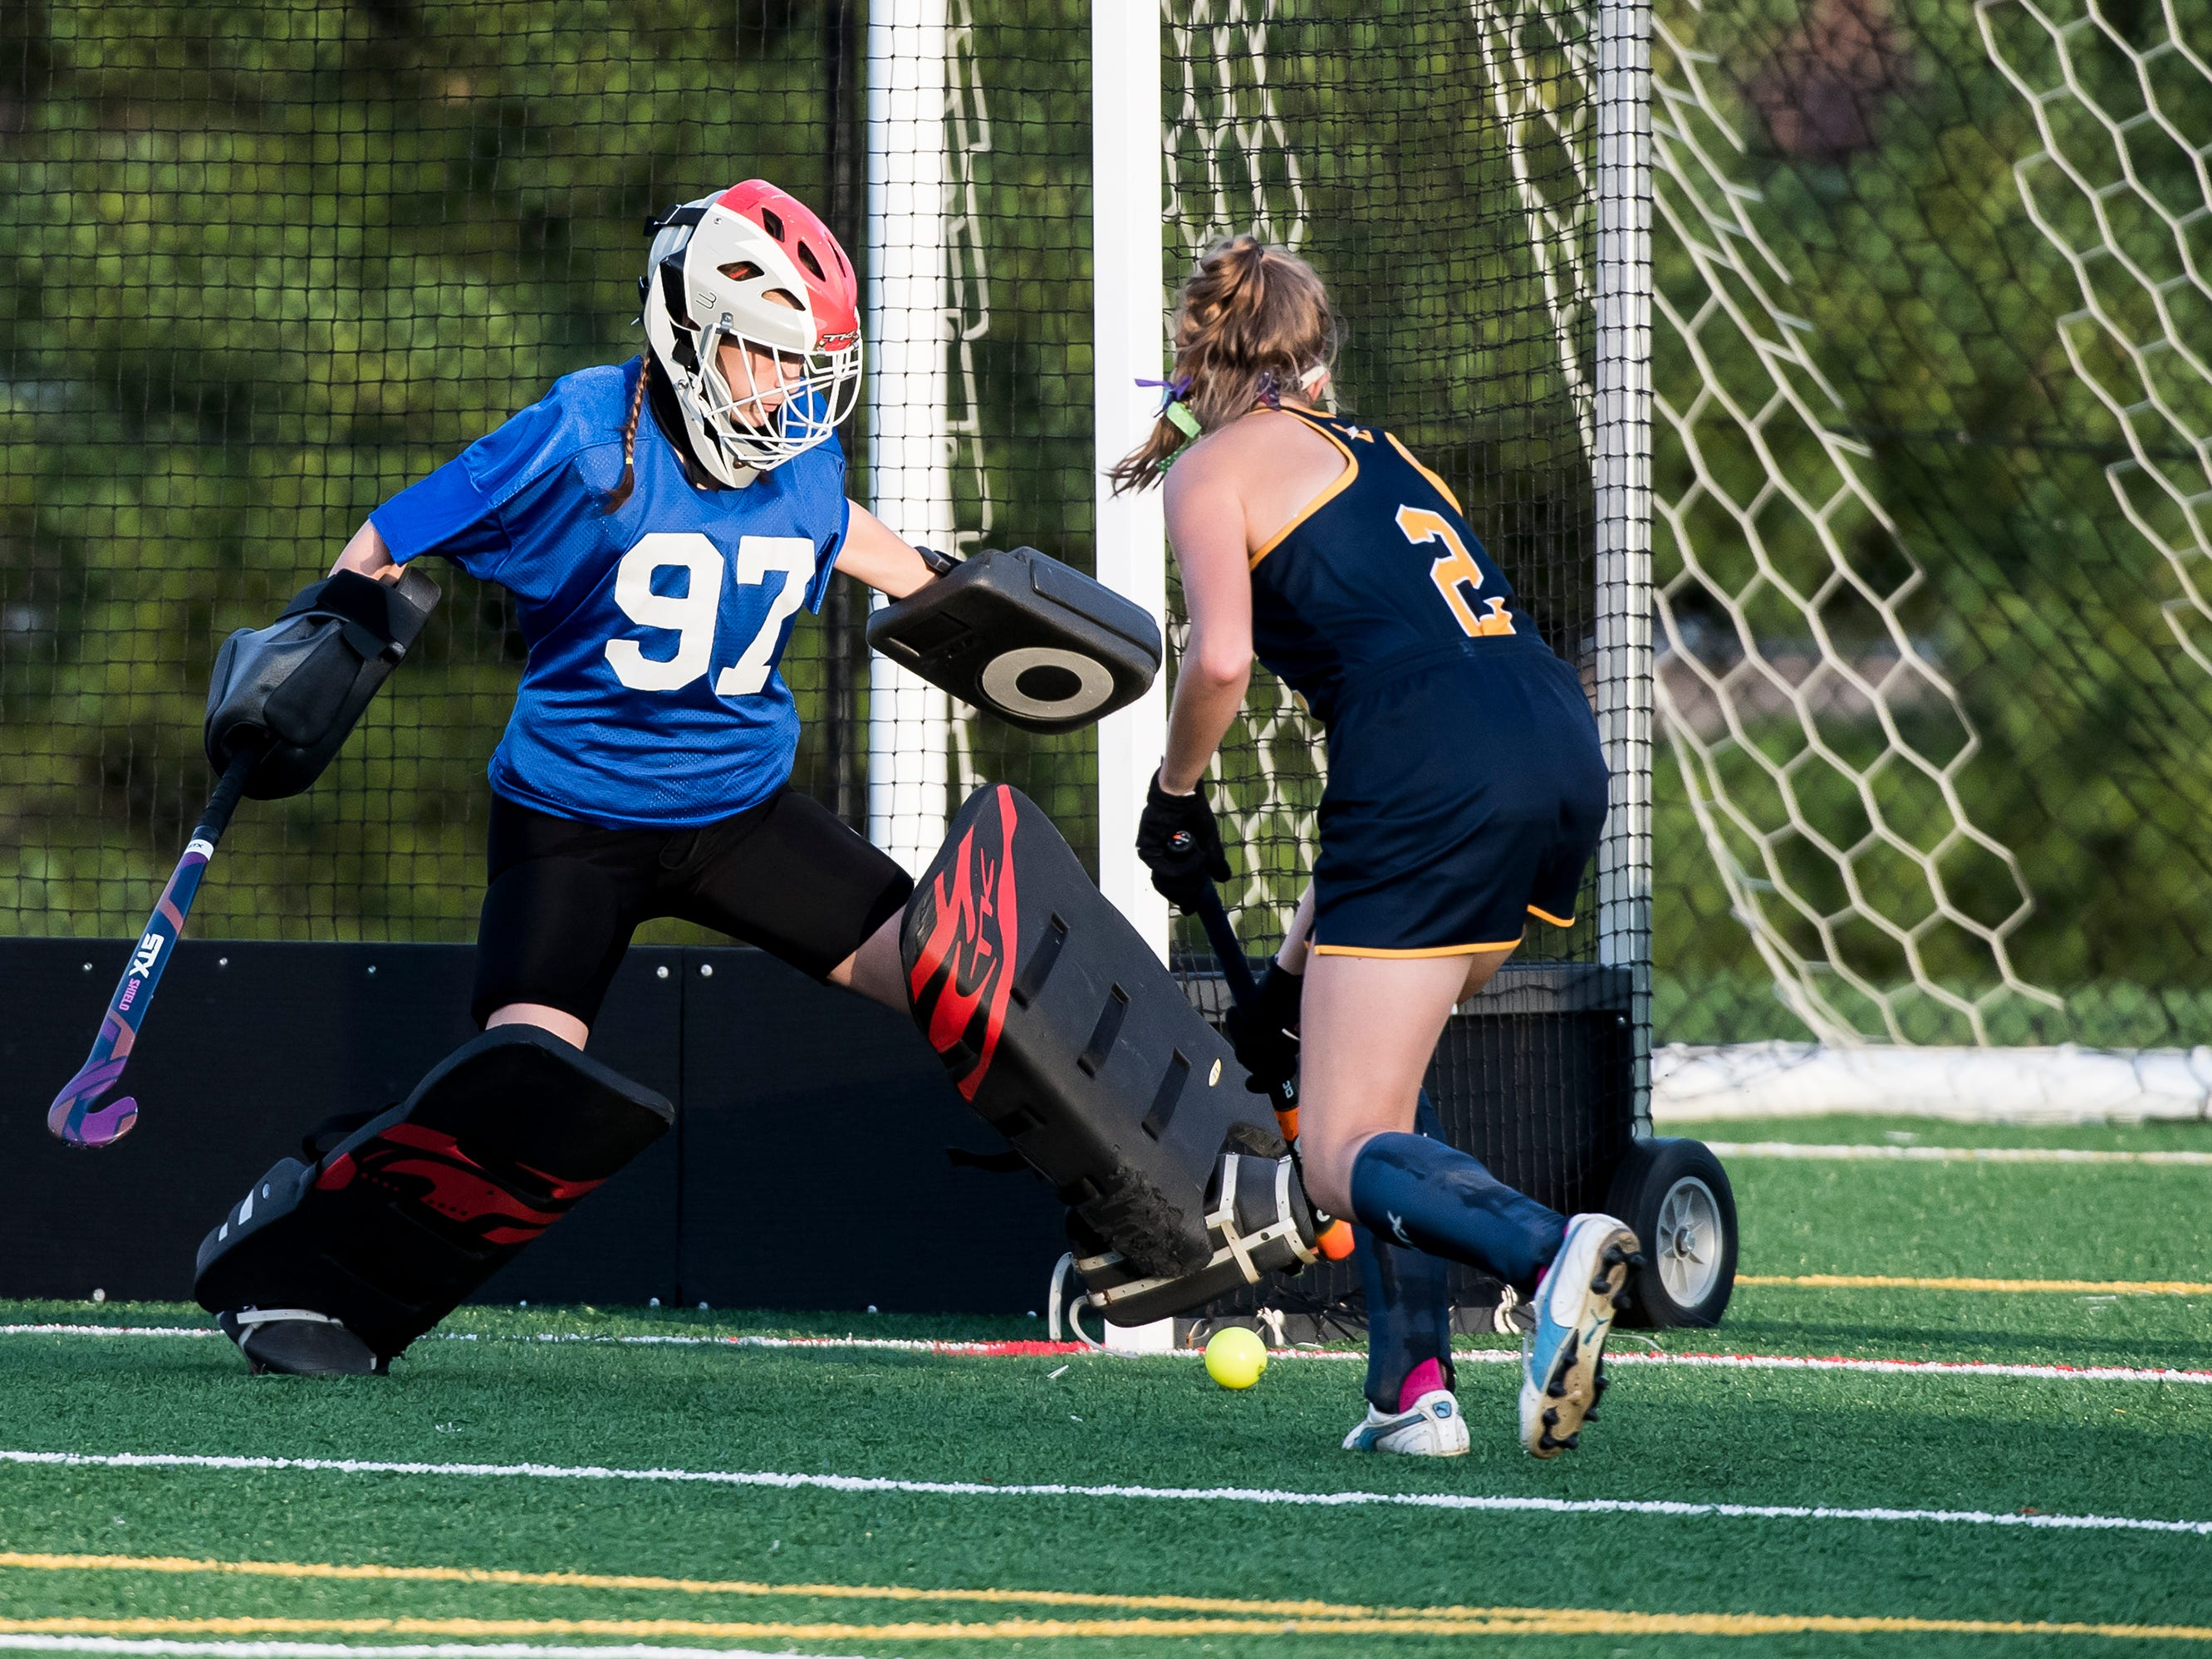 Bermudian Springs goalie Melaina Shoop blocks a shot from Littlestown's Cailey Sentz on Tuesday, October 9, 2018. The Eagles won 4-0.